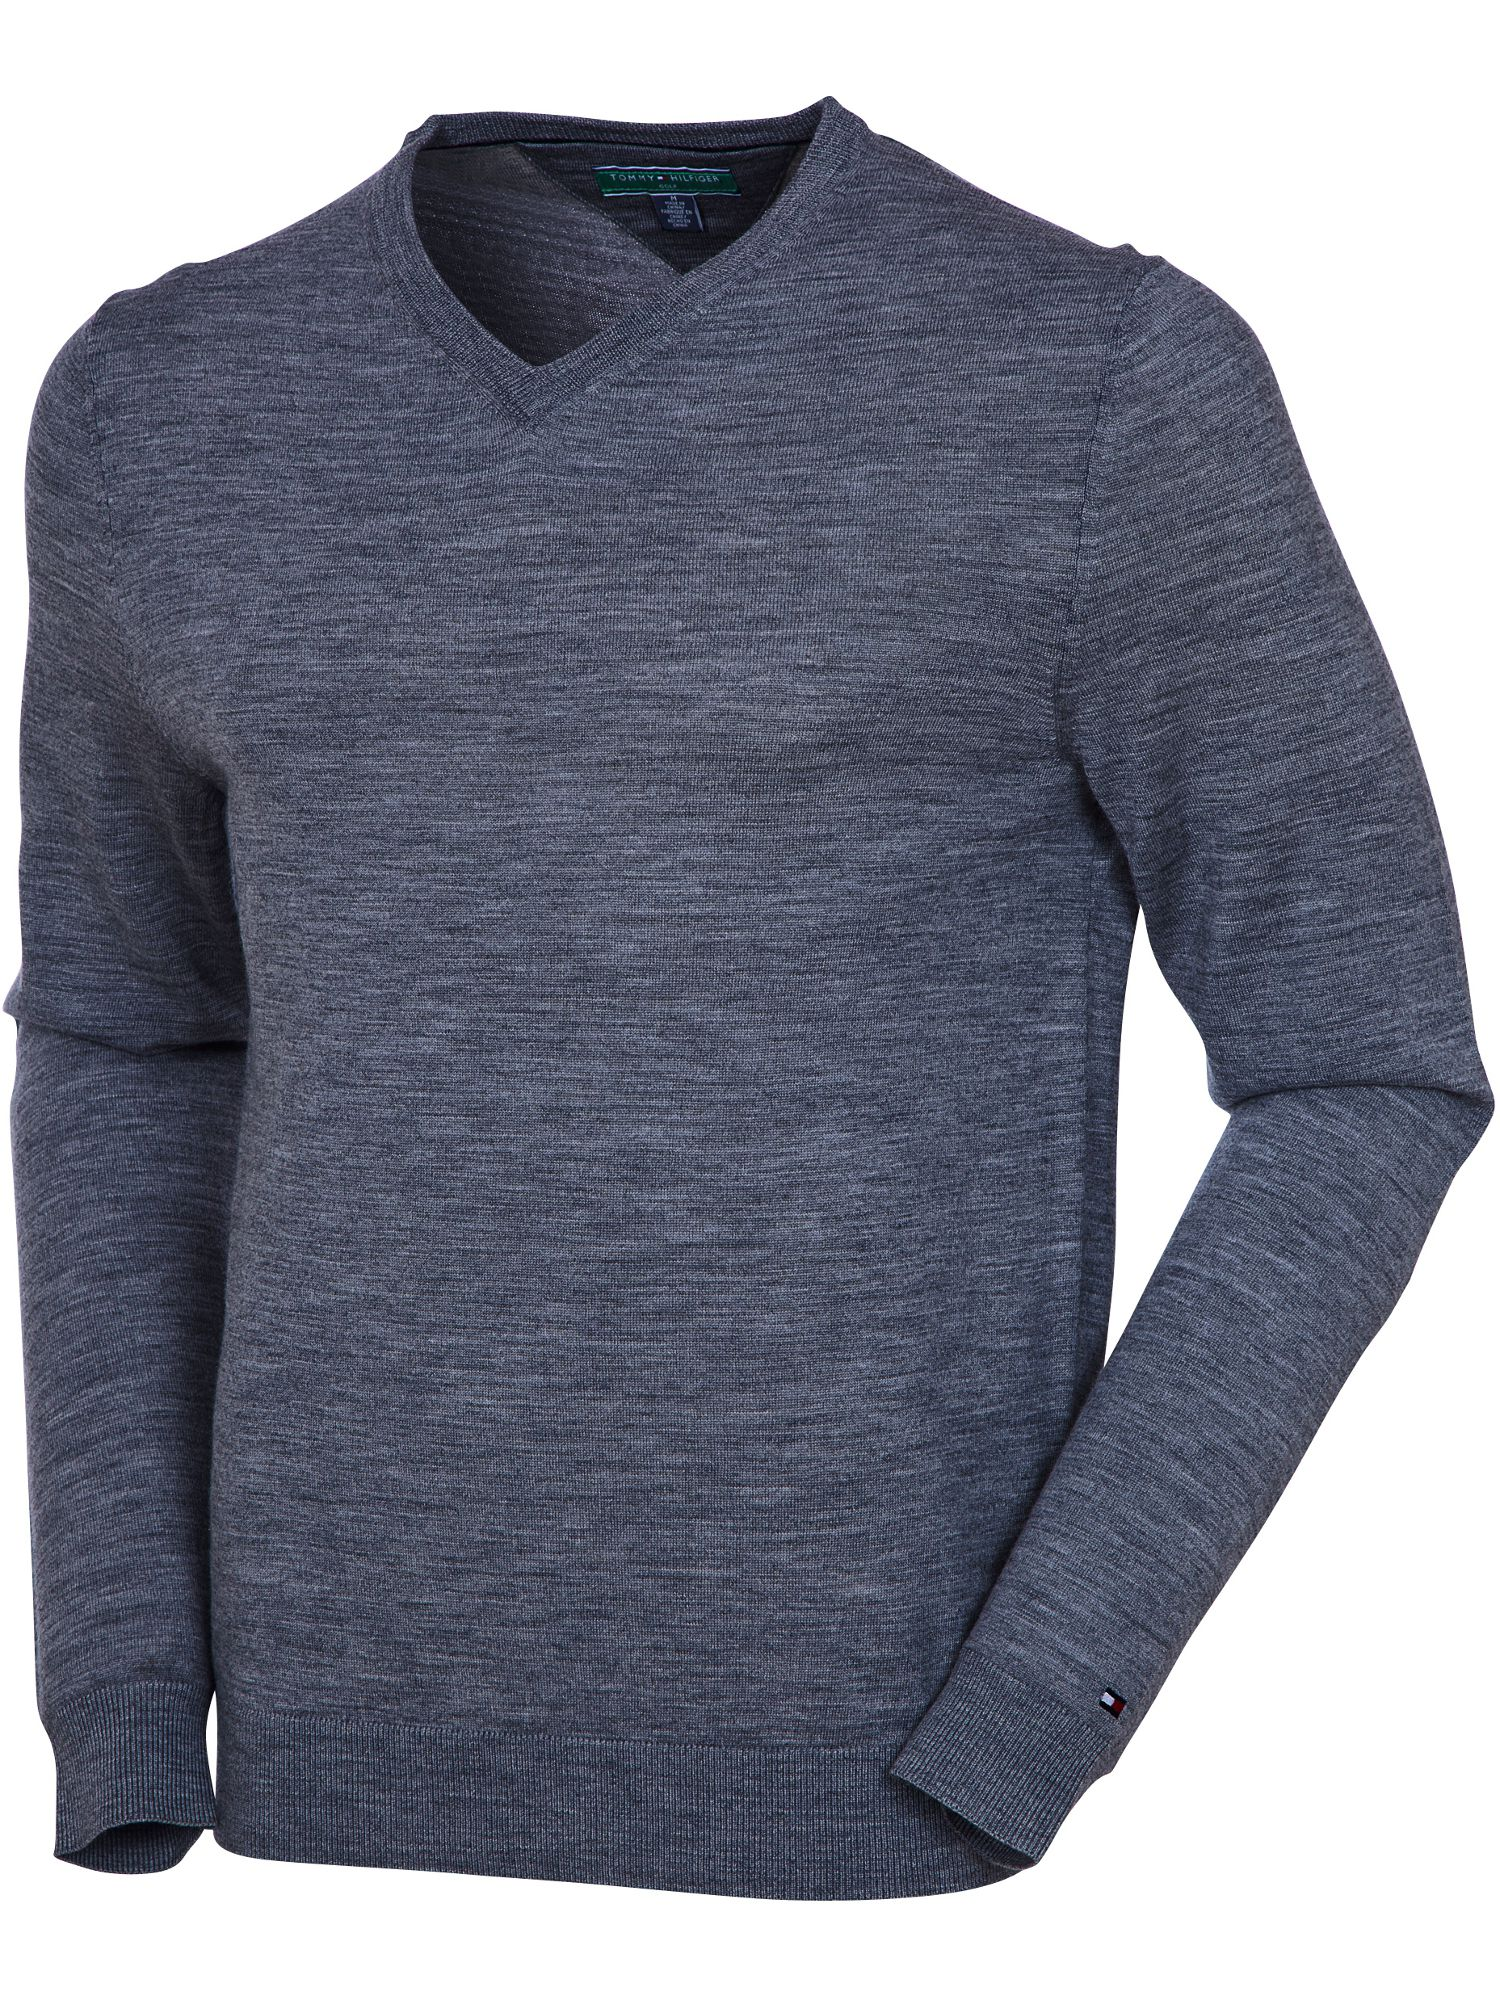 Preston merino sweater